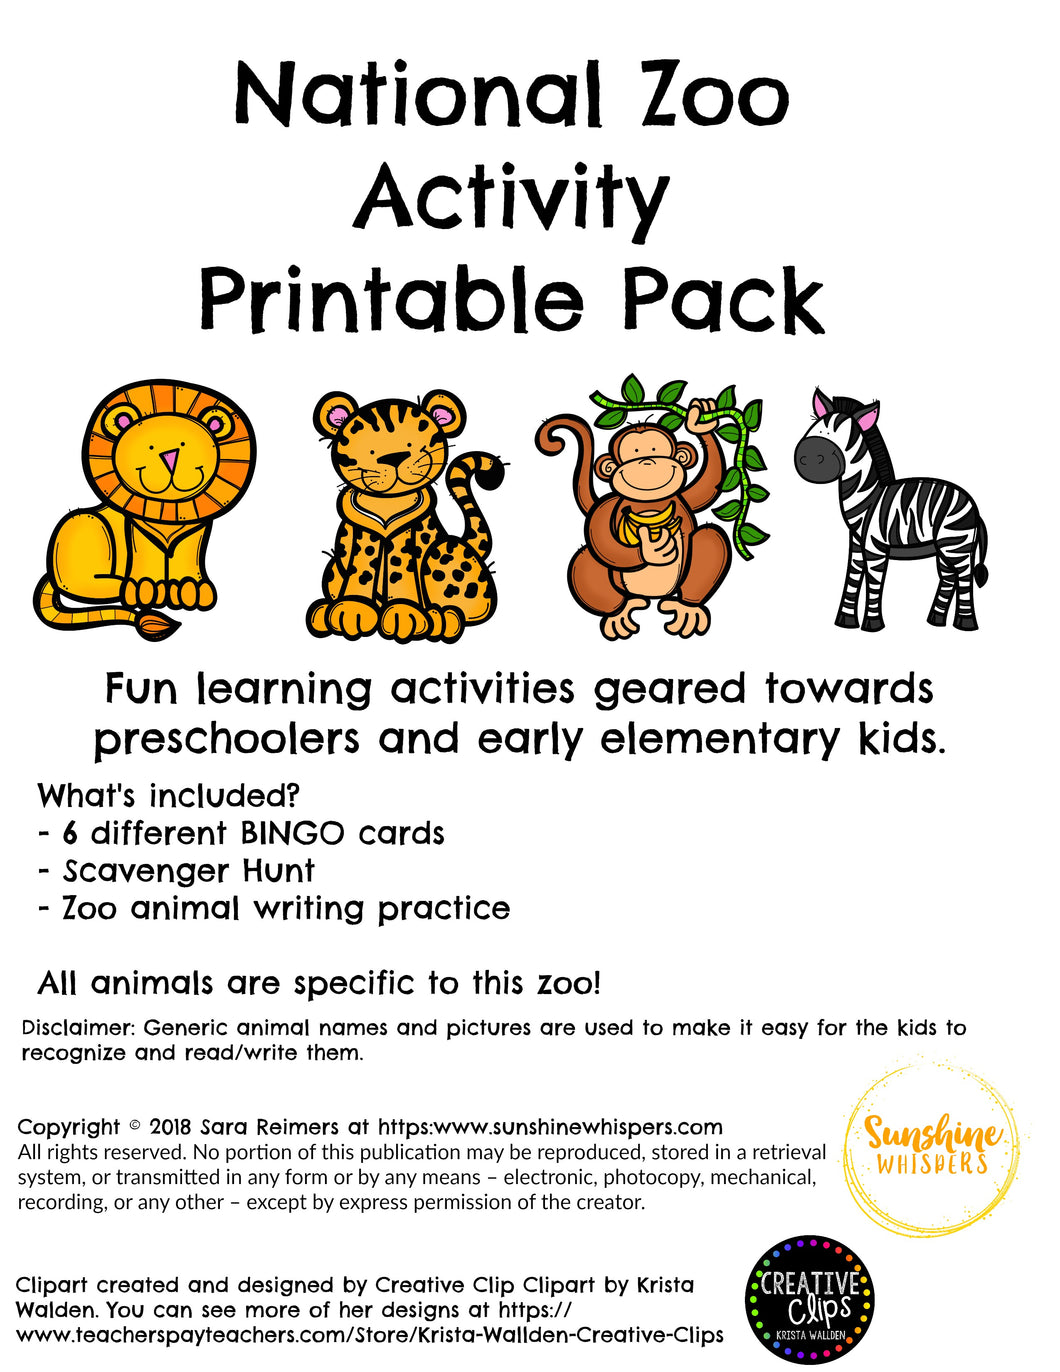 National Zoo Activity Printable Pack